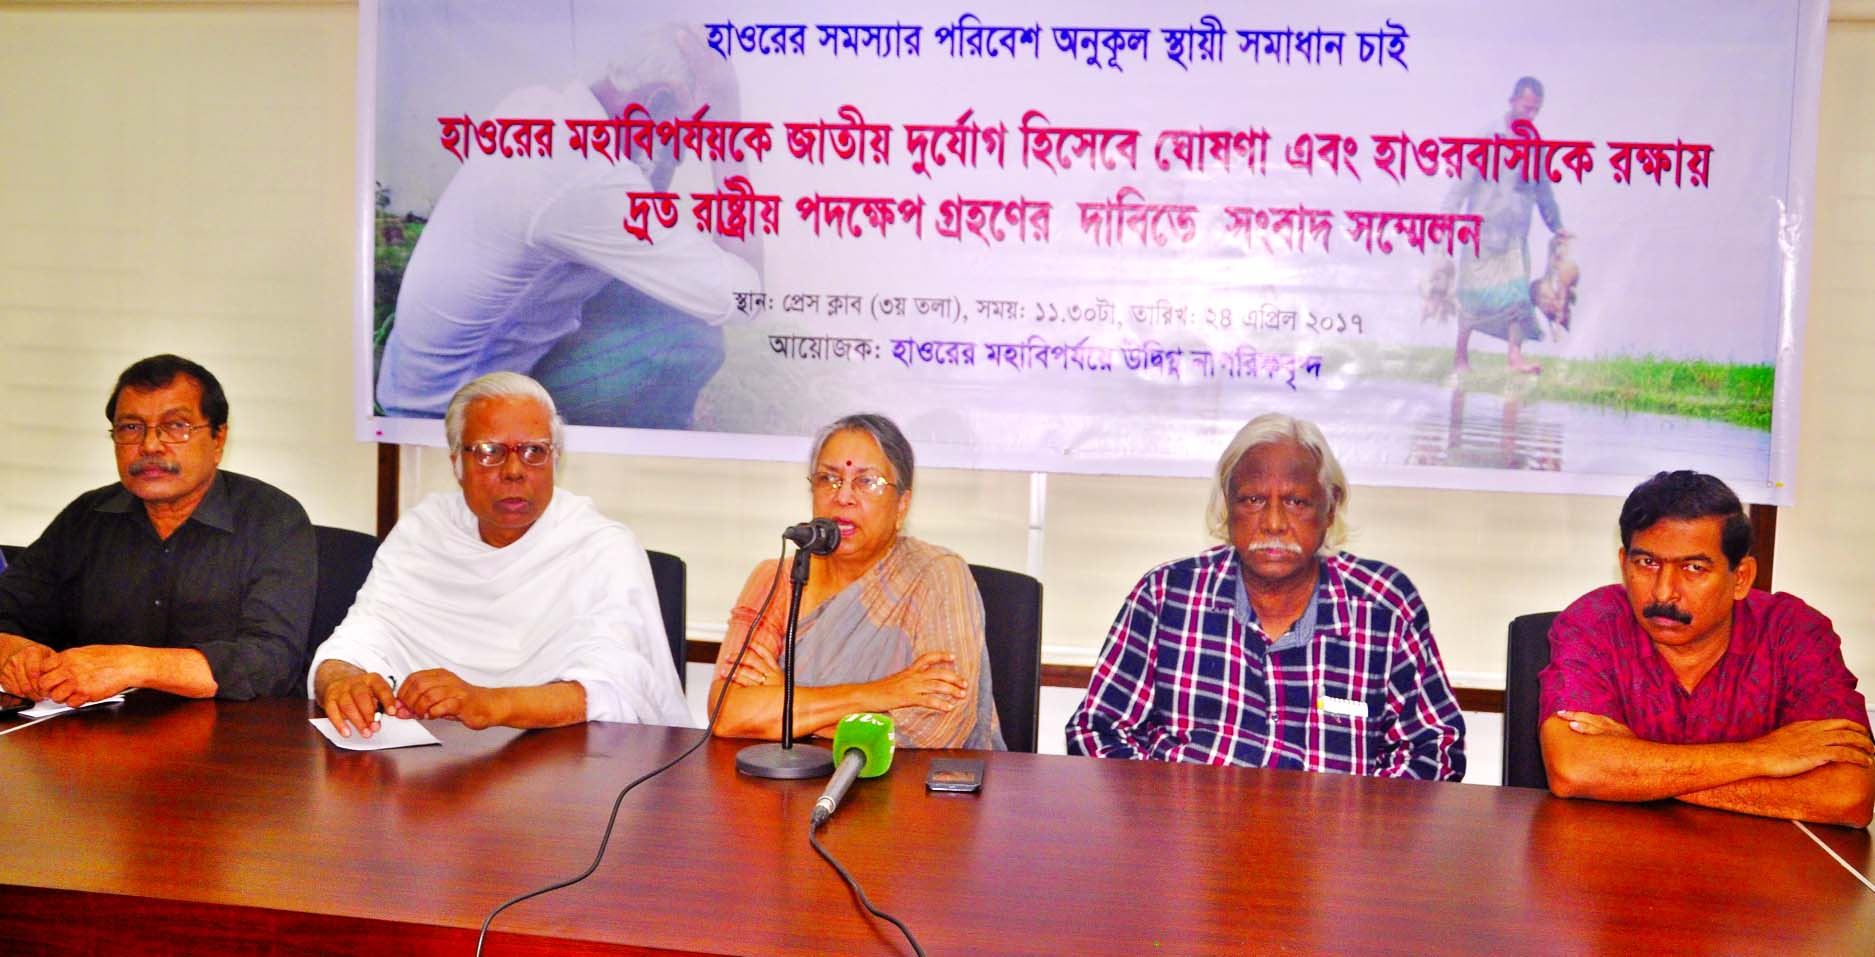 Former Adviser to the Caretaker Government Sultana Kamal speaking at a press conference organised by the anxious citizens of haor areas at the Jatiya Press Club on Monday demanding declaration of flood-affected haor areas as disaster-prone areas and also adequate compensation to the affeced people of the areas.